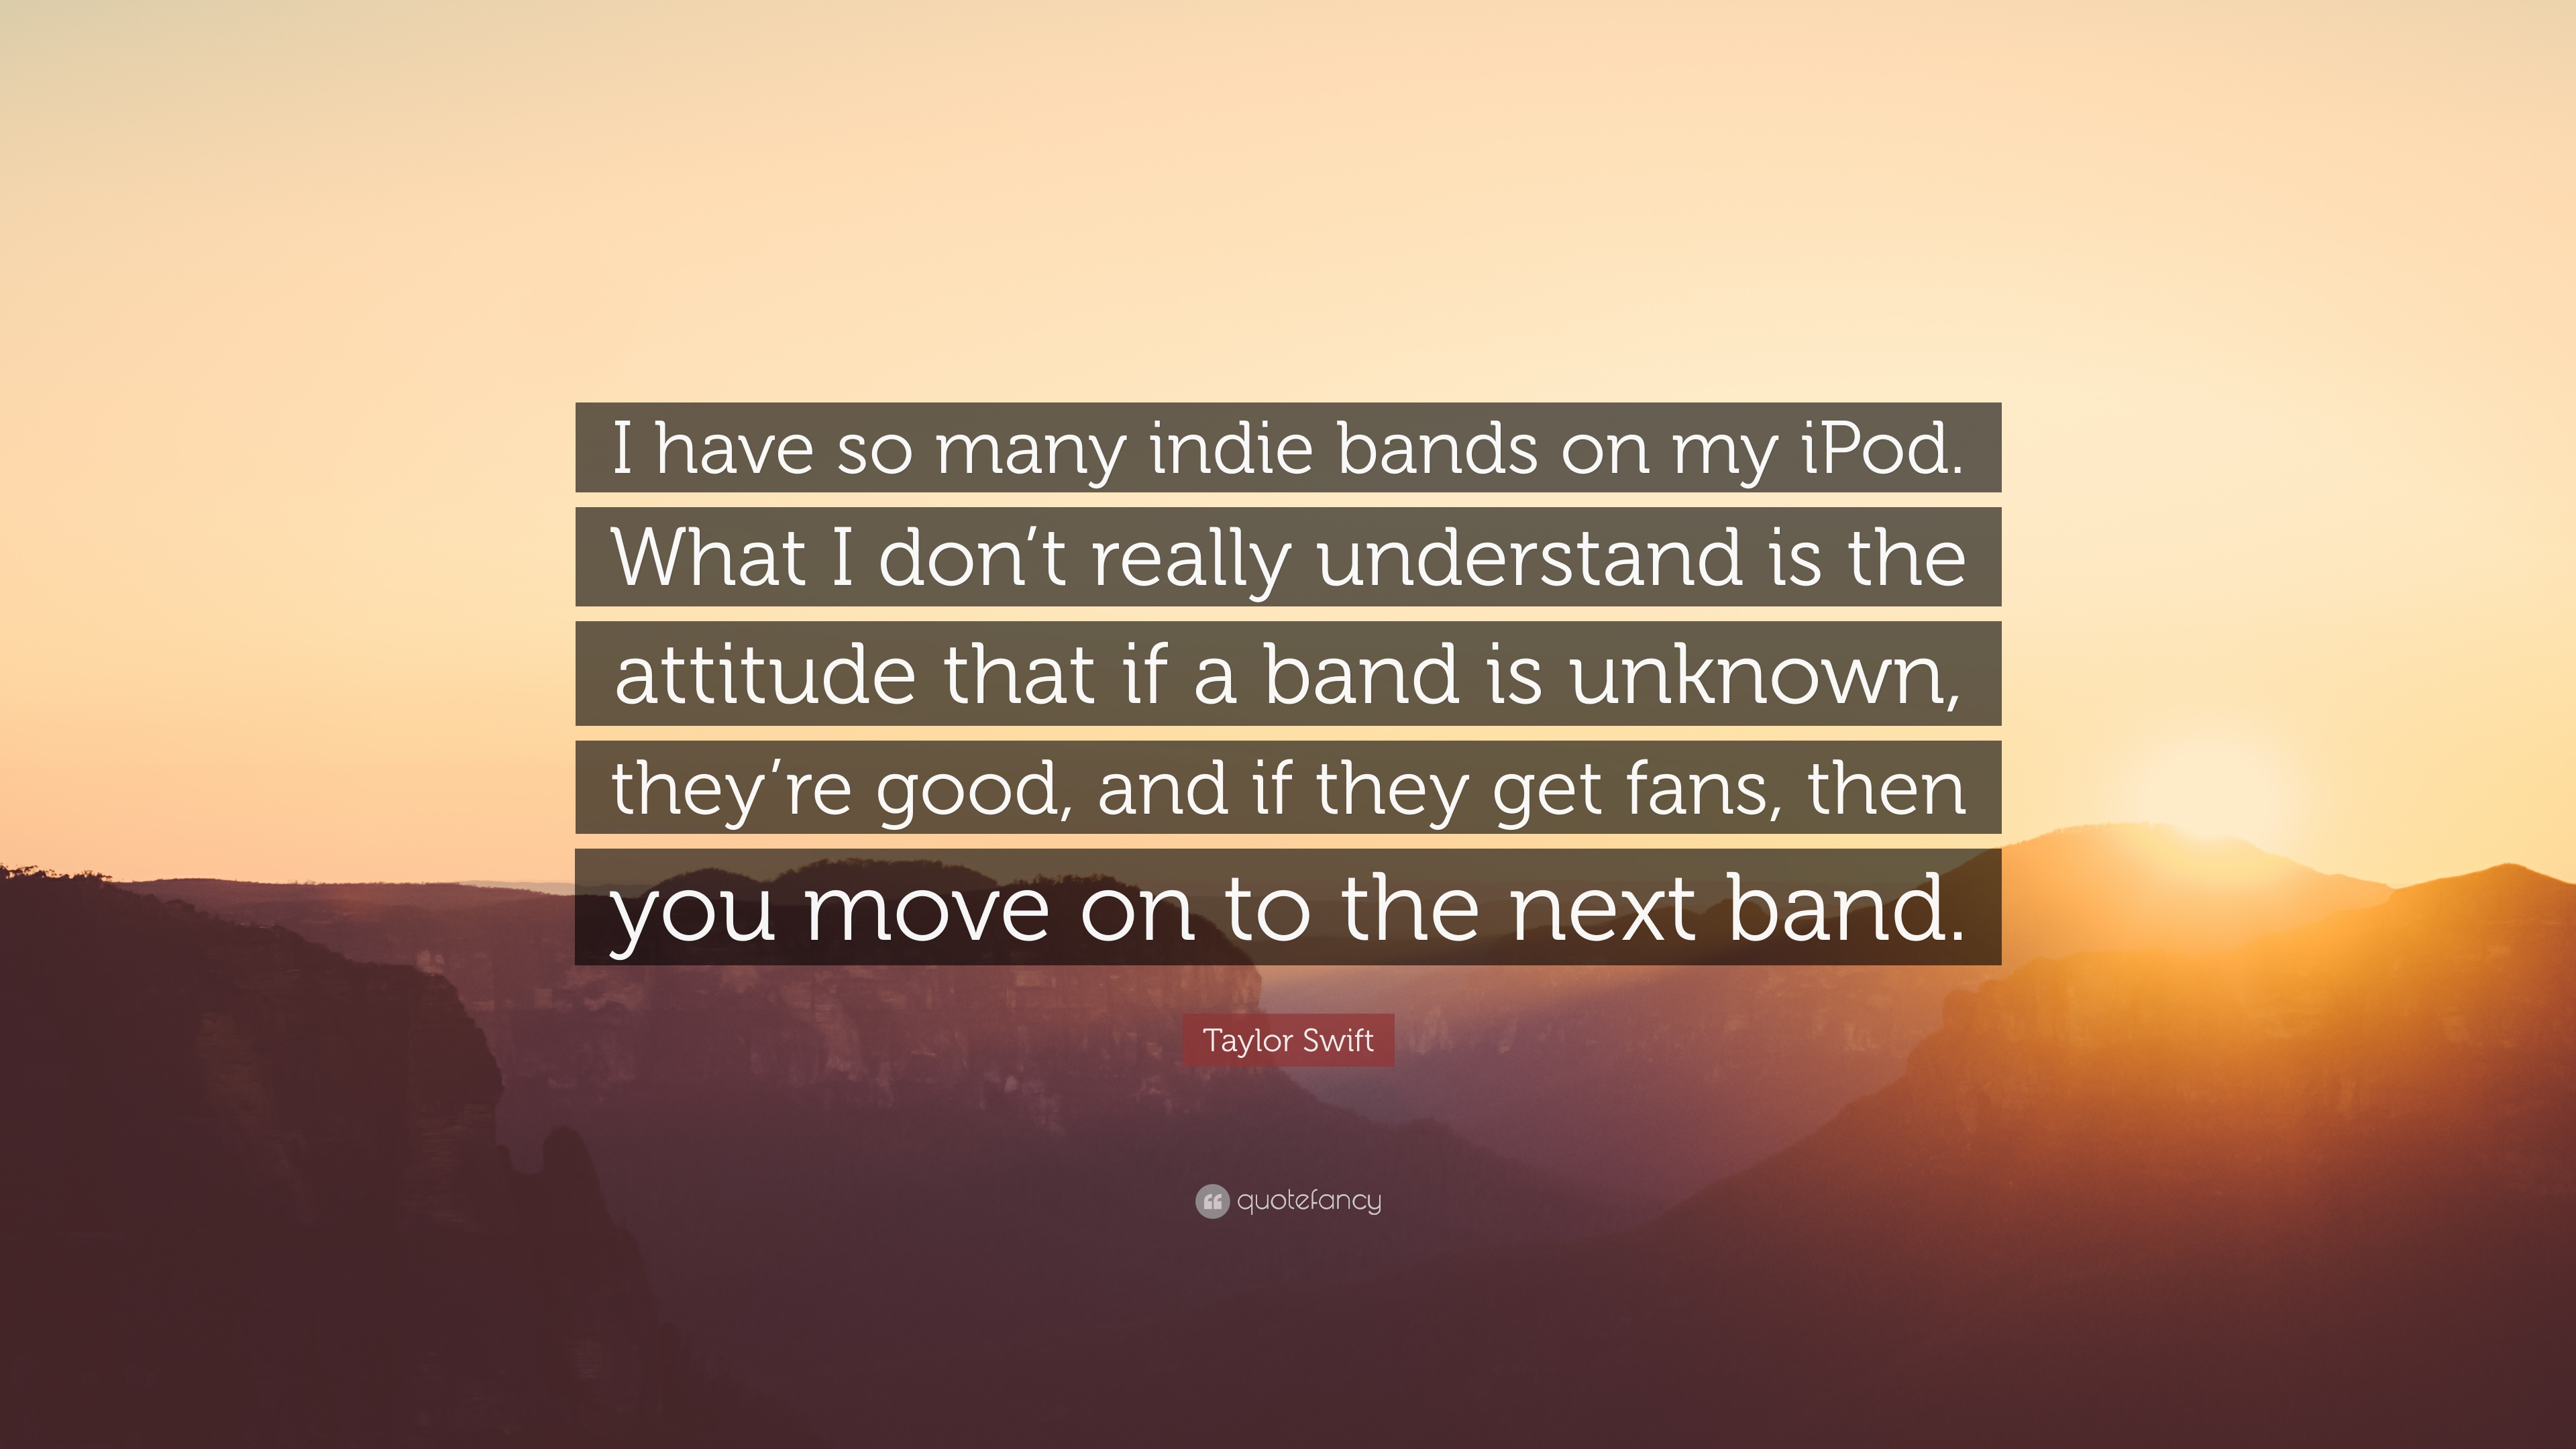 and new i would offer a quote there that wish fire bands more were good light anthony kiedis